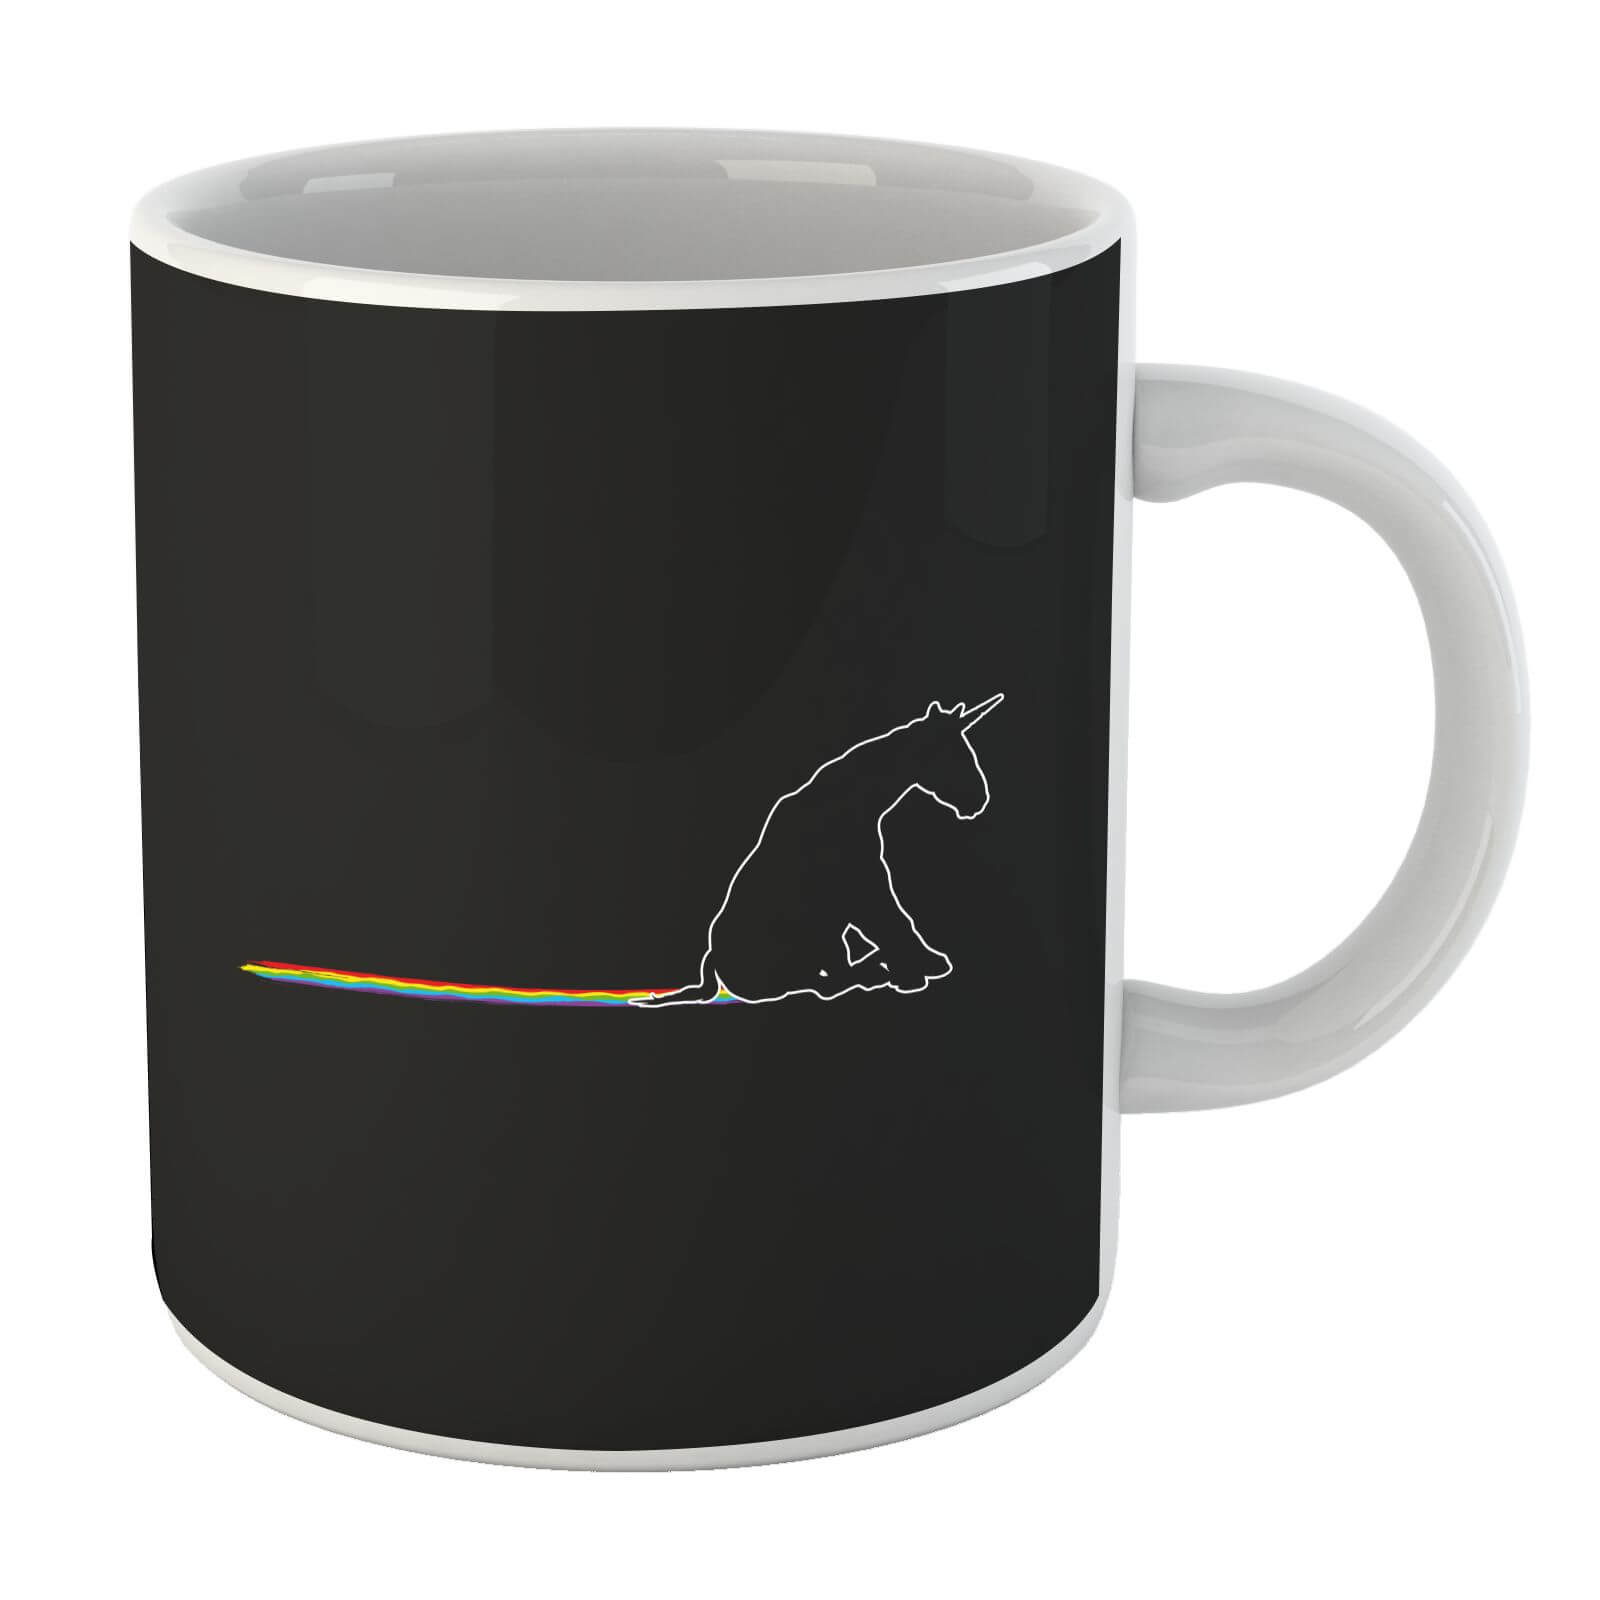 Unicorn Skid Mark Mug